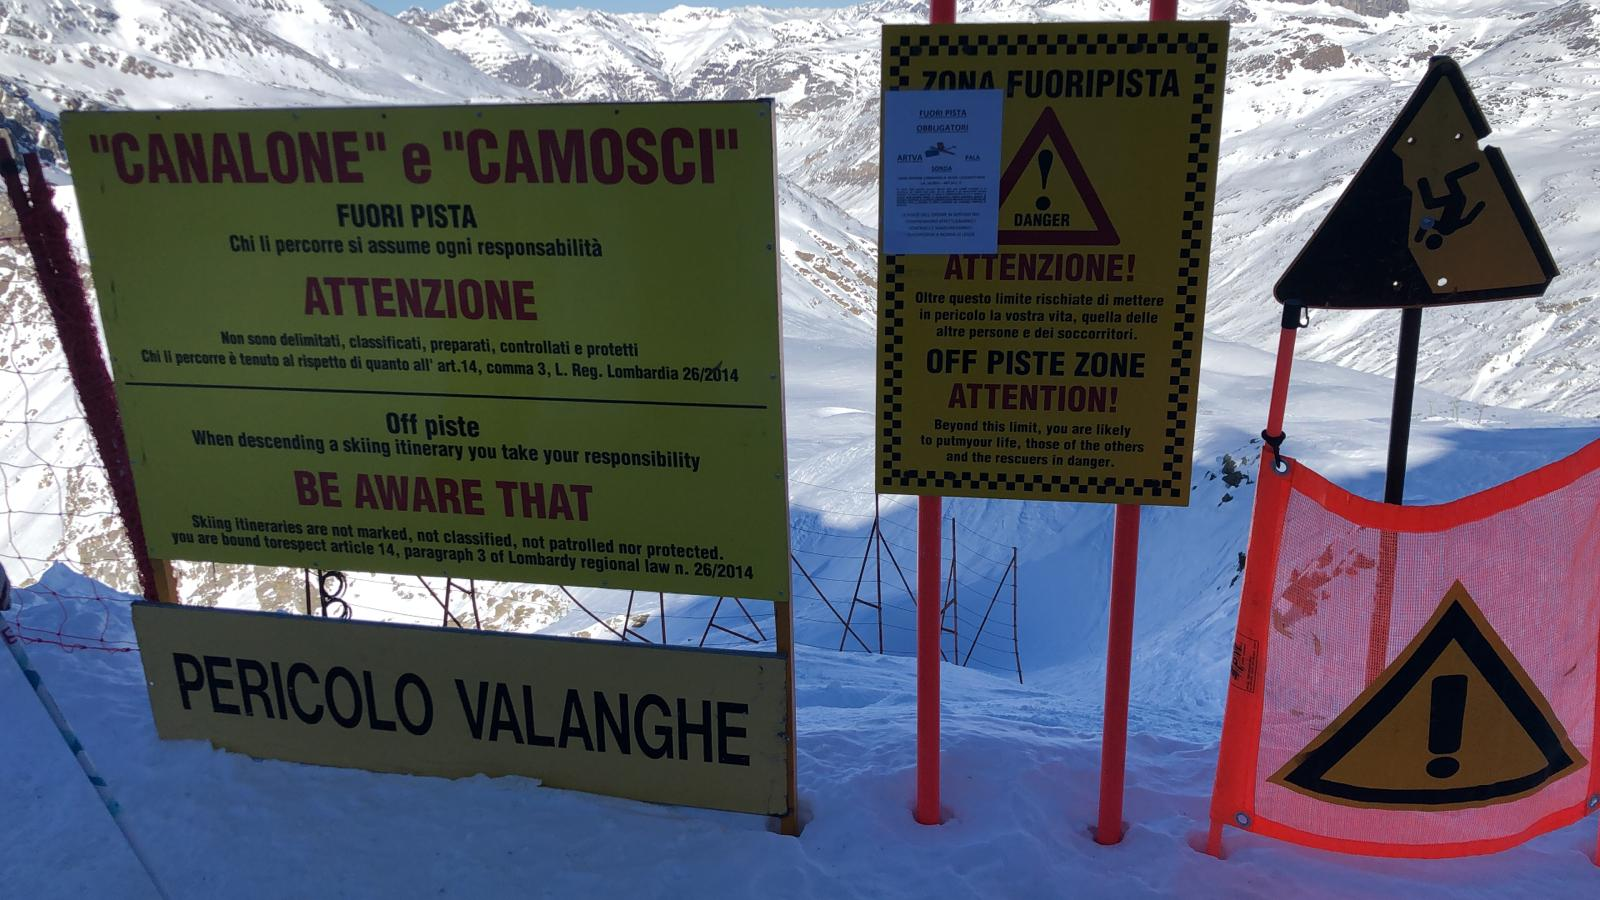 Photo of Canalone di Madesimo: splendido fuoripista o pista difficilissima?